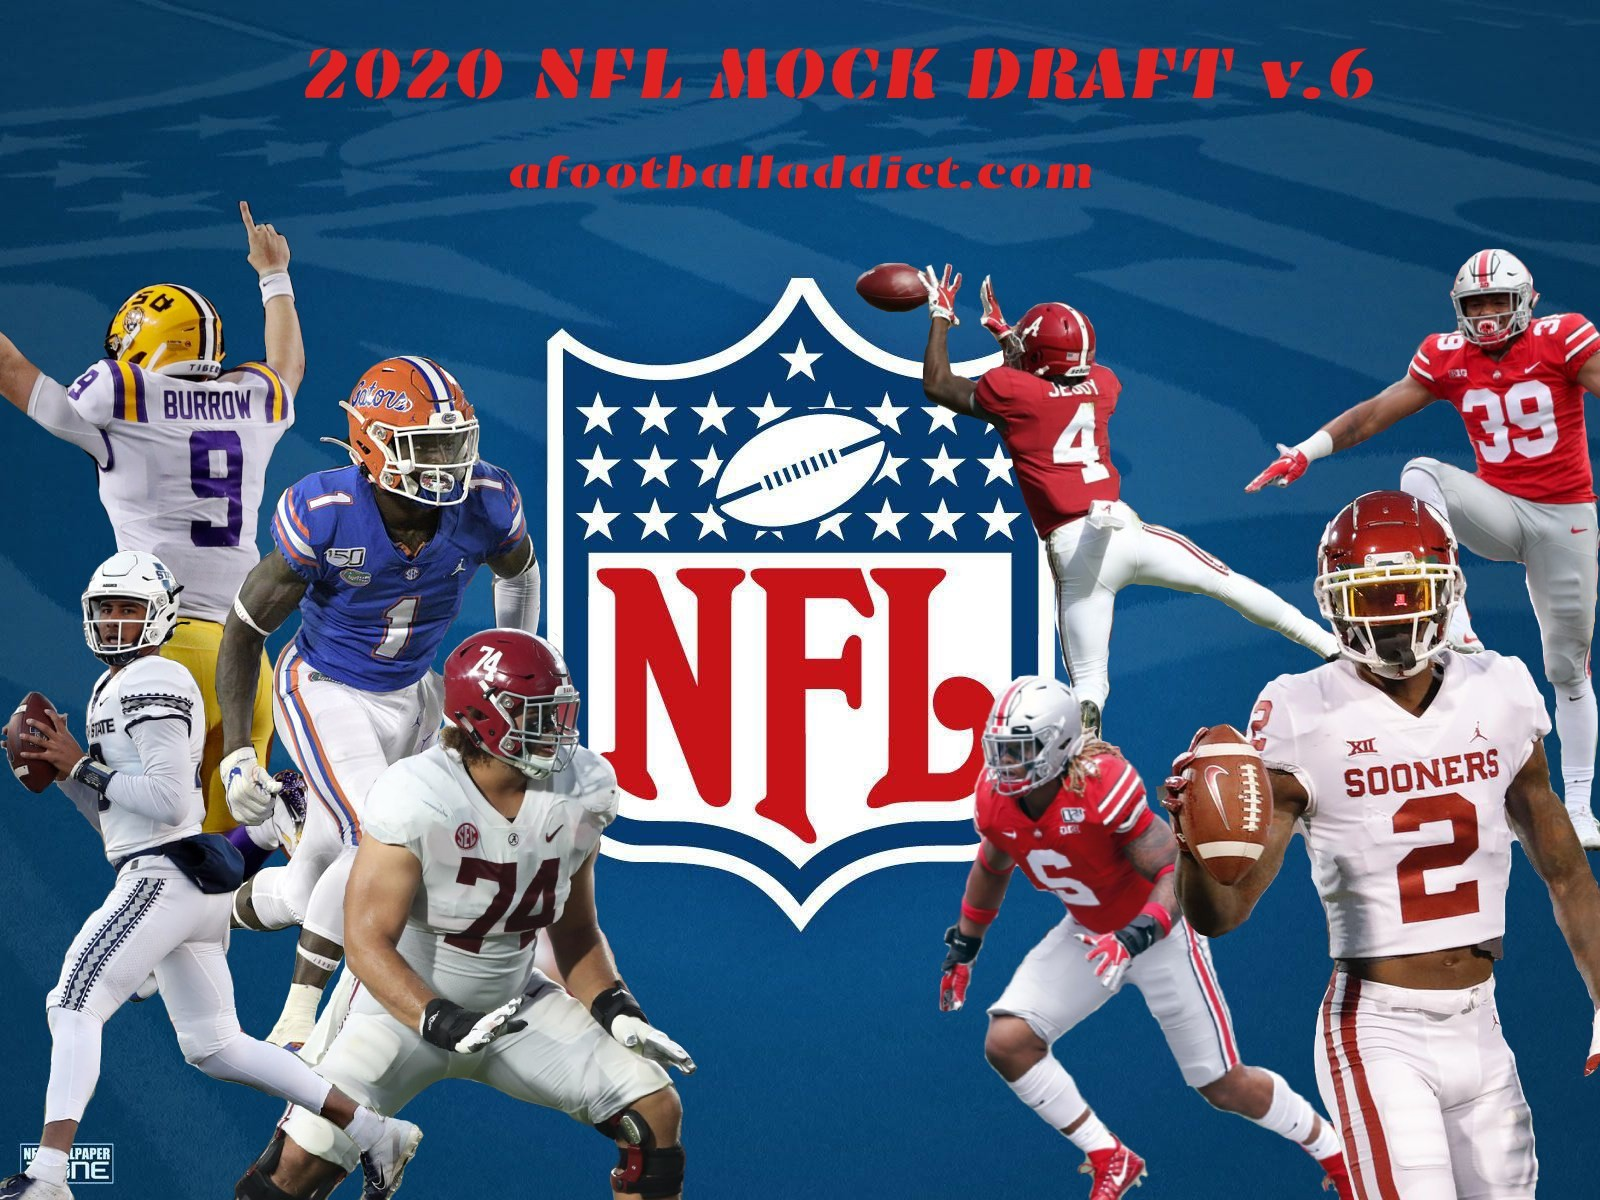 2020 NFL Mock Draft v.6